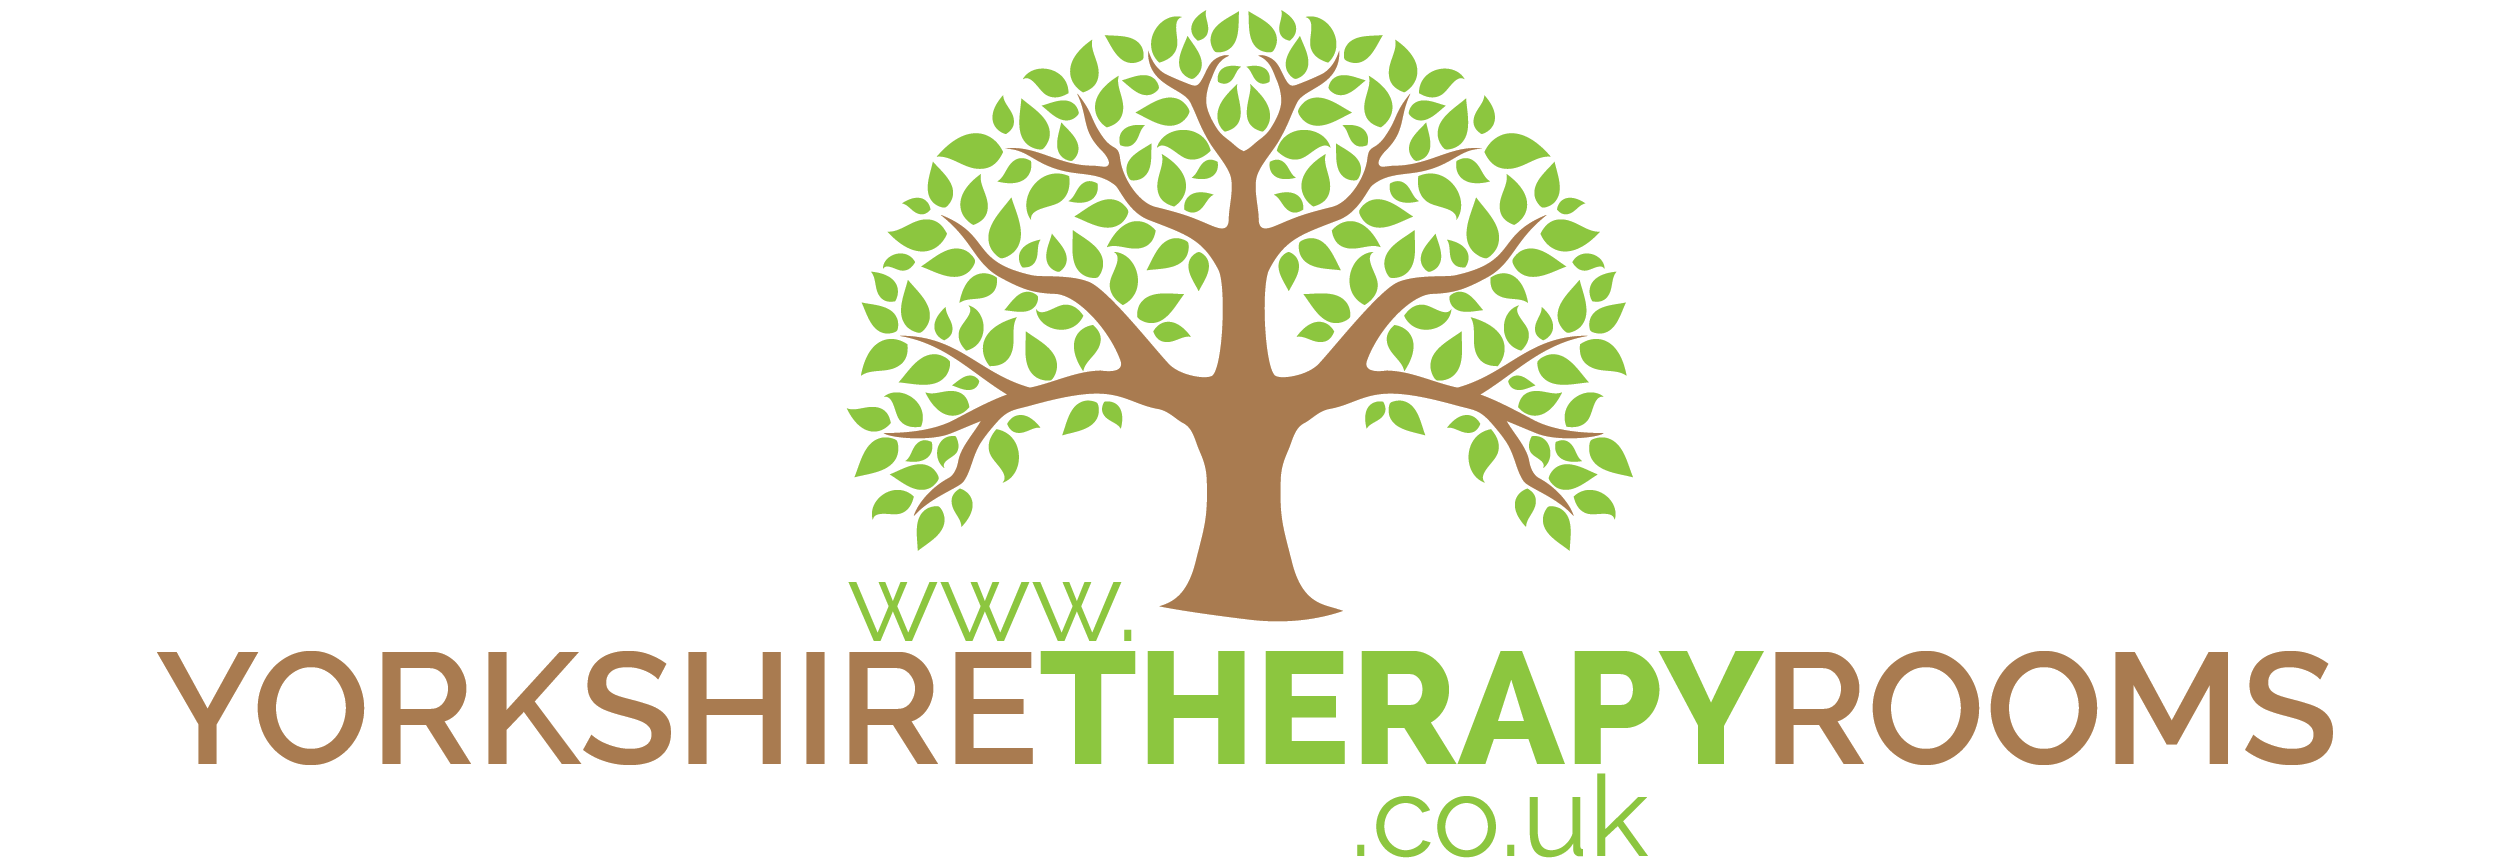 The Yorkshire Therapy Rooms